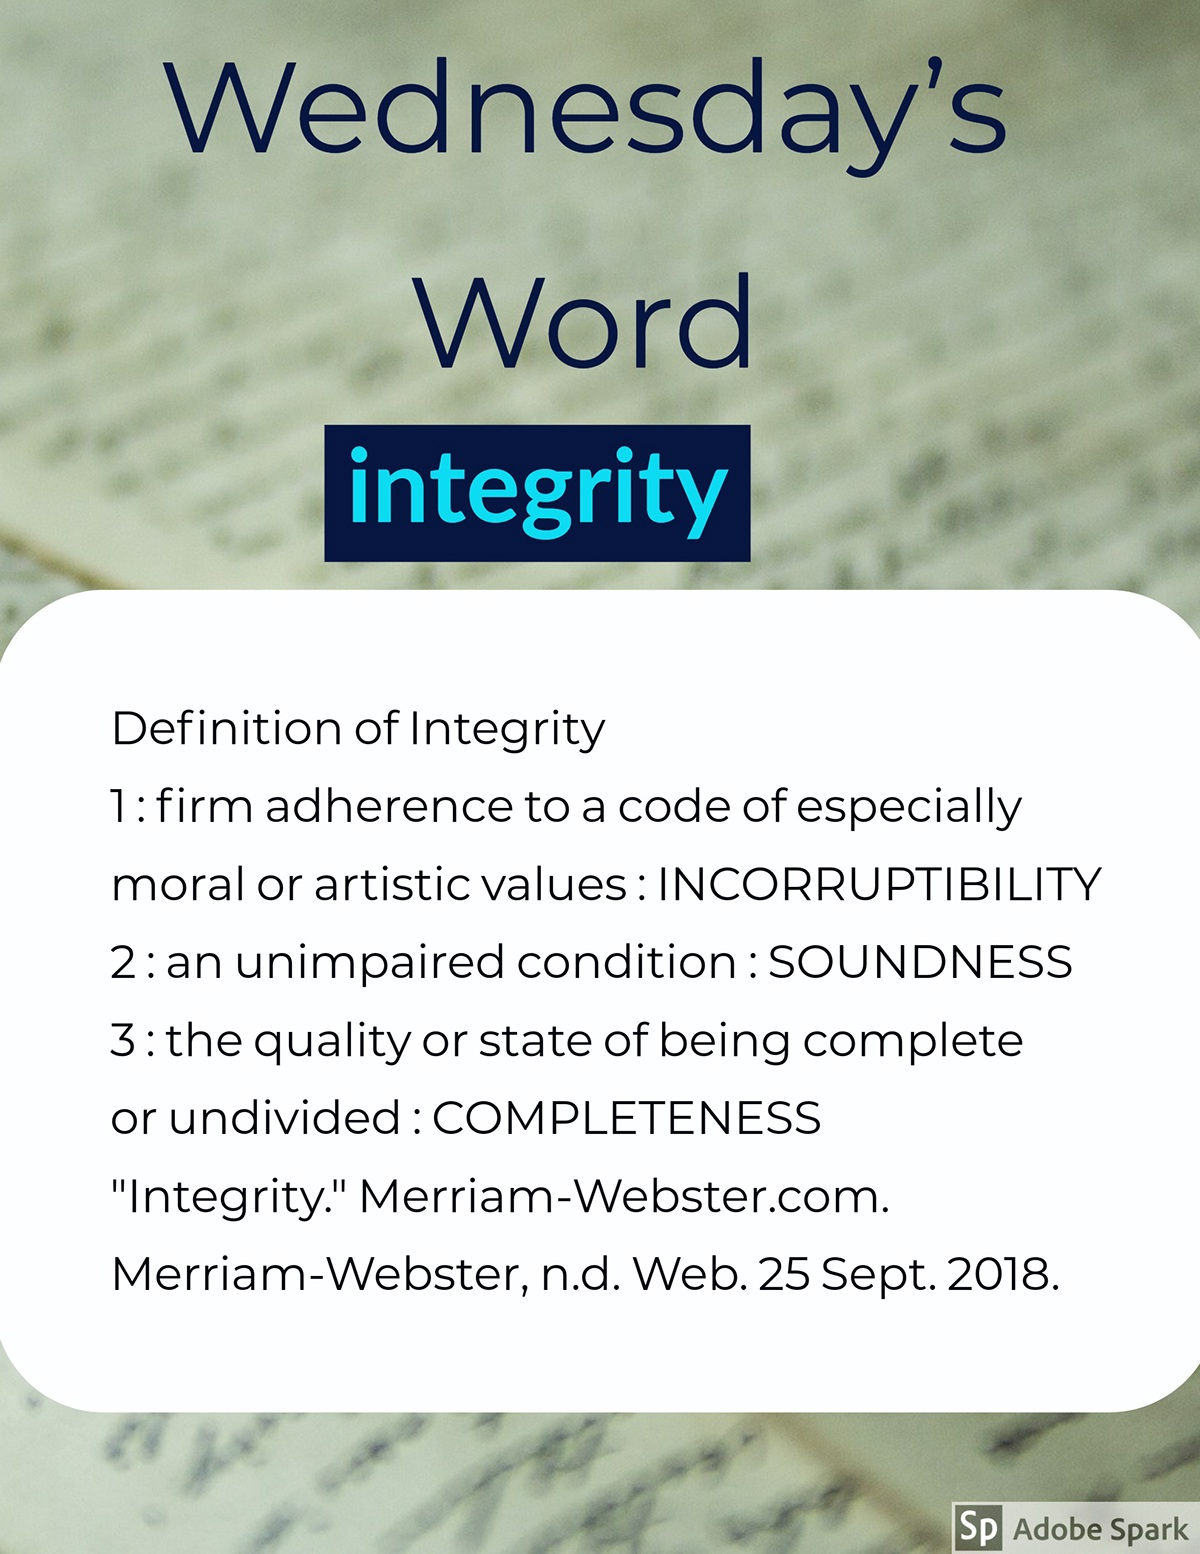 "Wednesday's Word Wednesday's Word<P>integrity<P>Definition of Integrity <BR>1 : firm adherence to a code of especially moral or artistic values : INCORRUPTIBILITY<BR>2 : an unimpaired condition : SOUNDNESS 3 : the quality or state of being complete or undivided : COMPLETENESS  ""Integrity."" Merriam-Webster.com. Merriam-Webster, n.d. Web. 25 Sept. 2018."